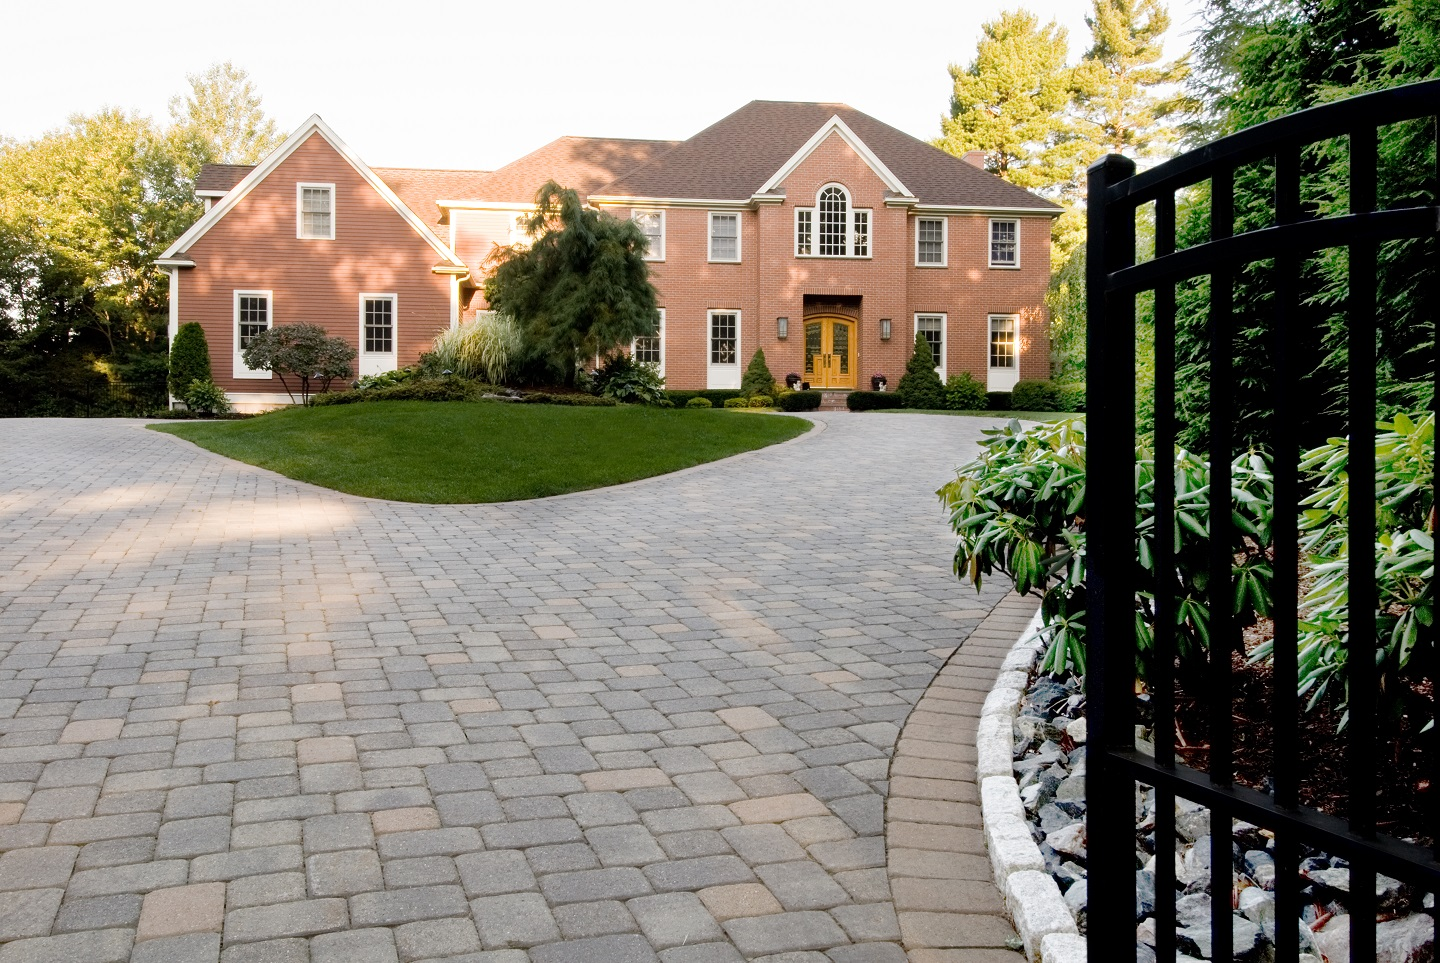 Durable Unilock driveway pavers in Cambridge, MA